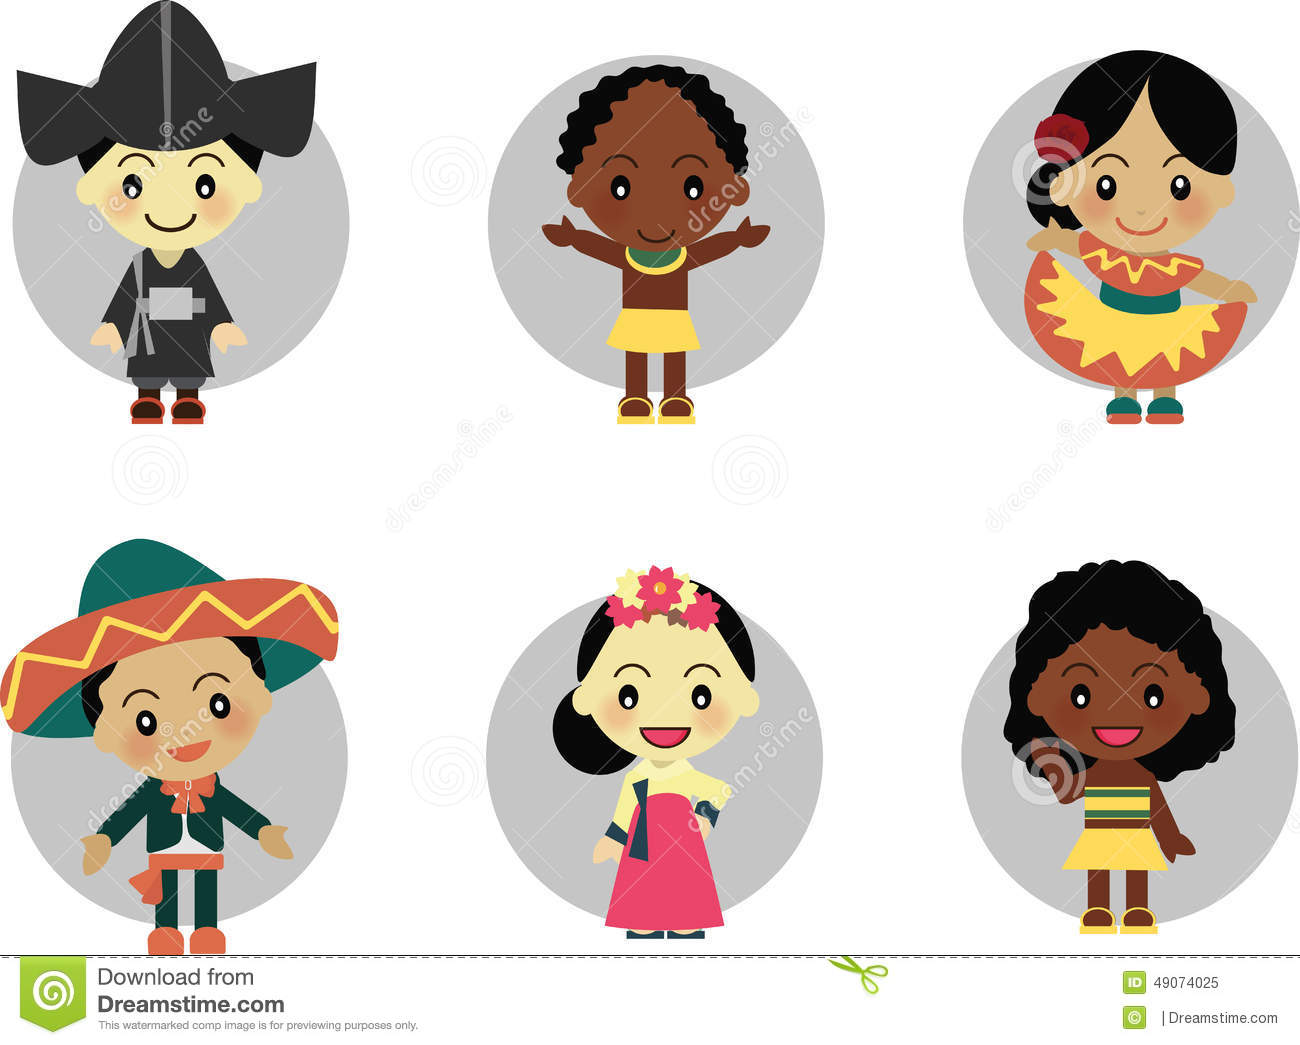 kids diversity arround korea mexico africa wear traditional clothes